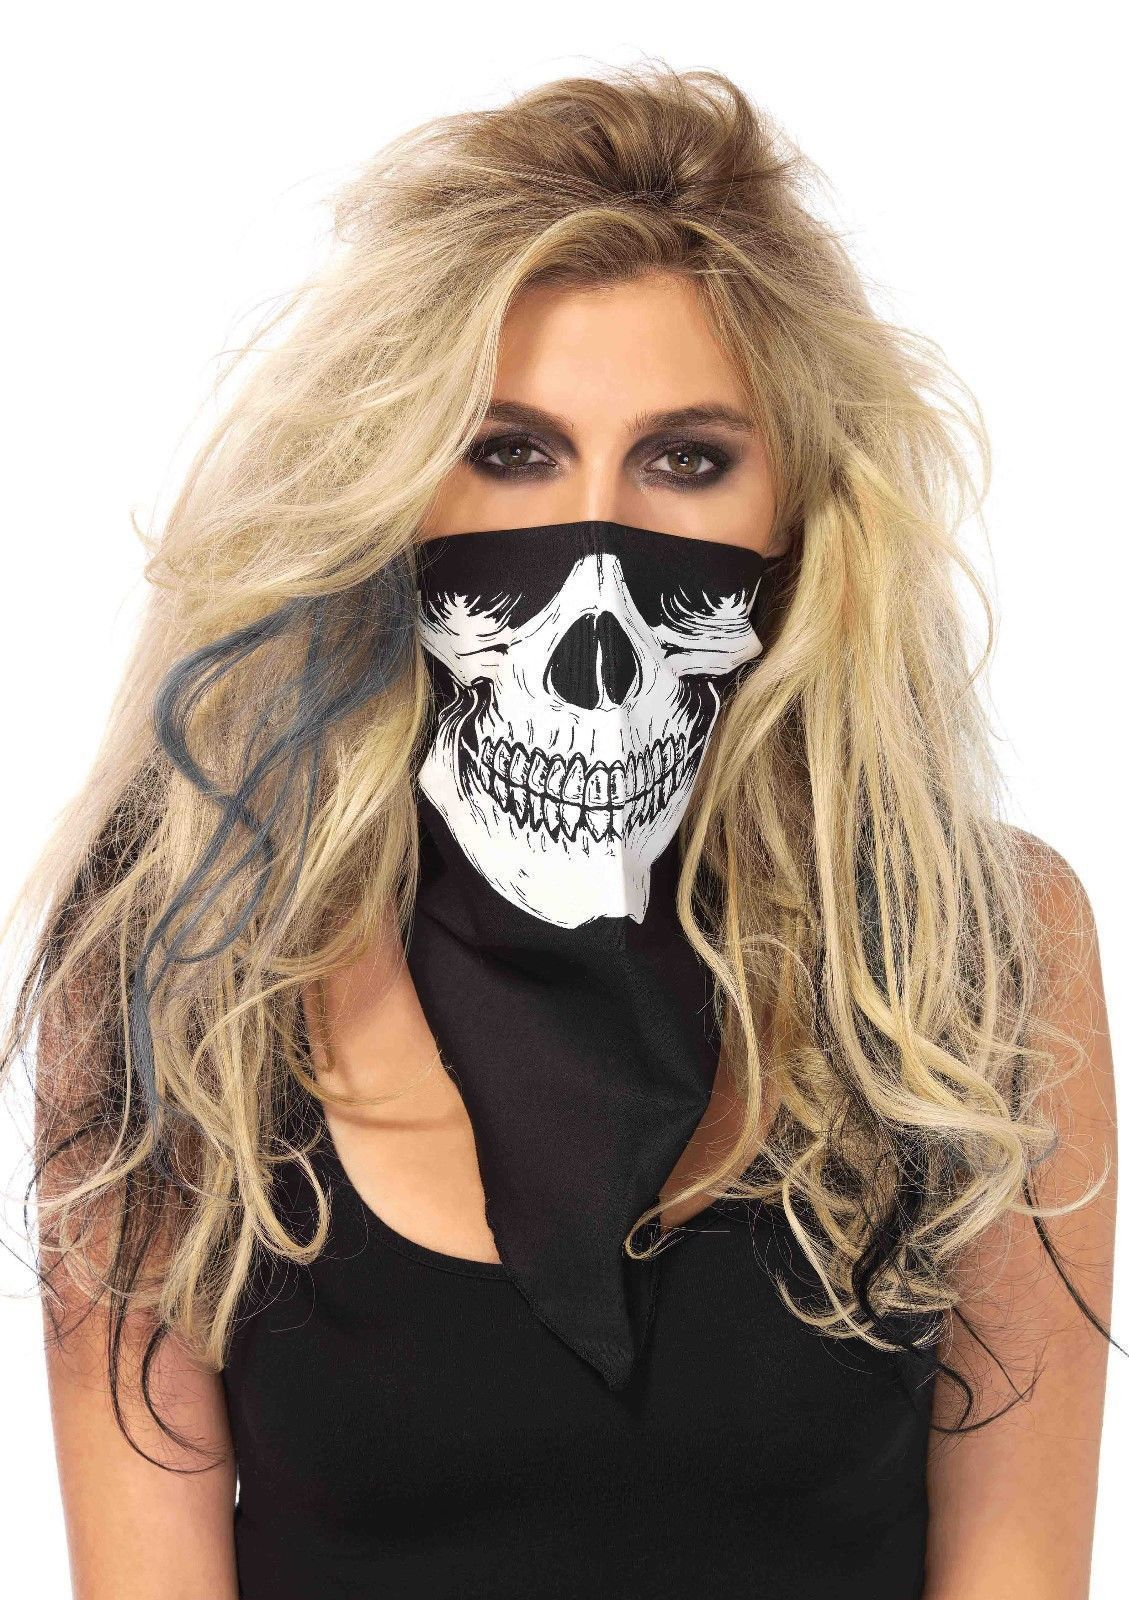 Men's Masks 100% True Halloween Party Stretch Bone Skeleton Shape Masks Festival Fancy Dress Pirate Costume Accessories For Men Women Apparel Accessories